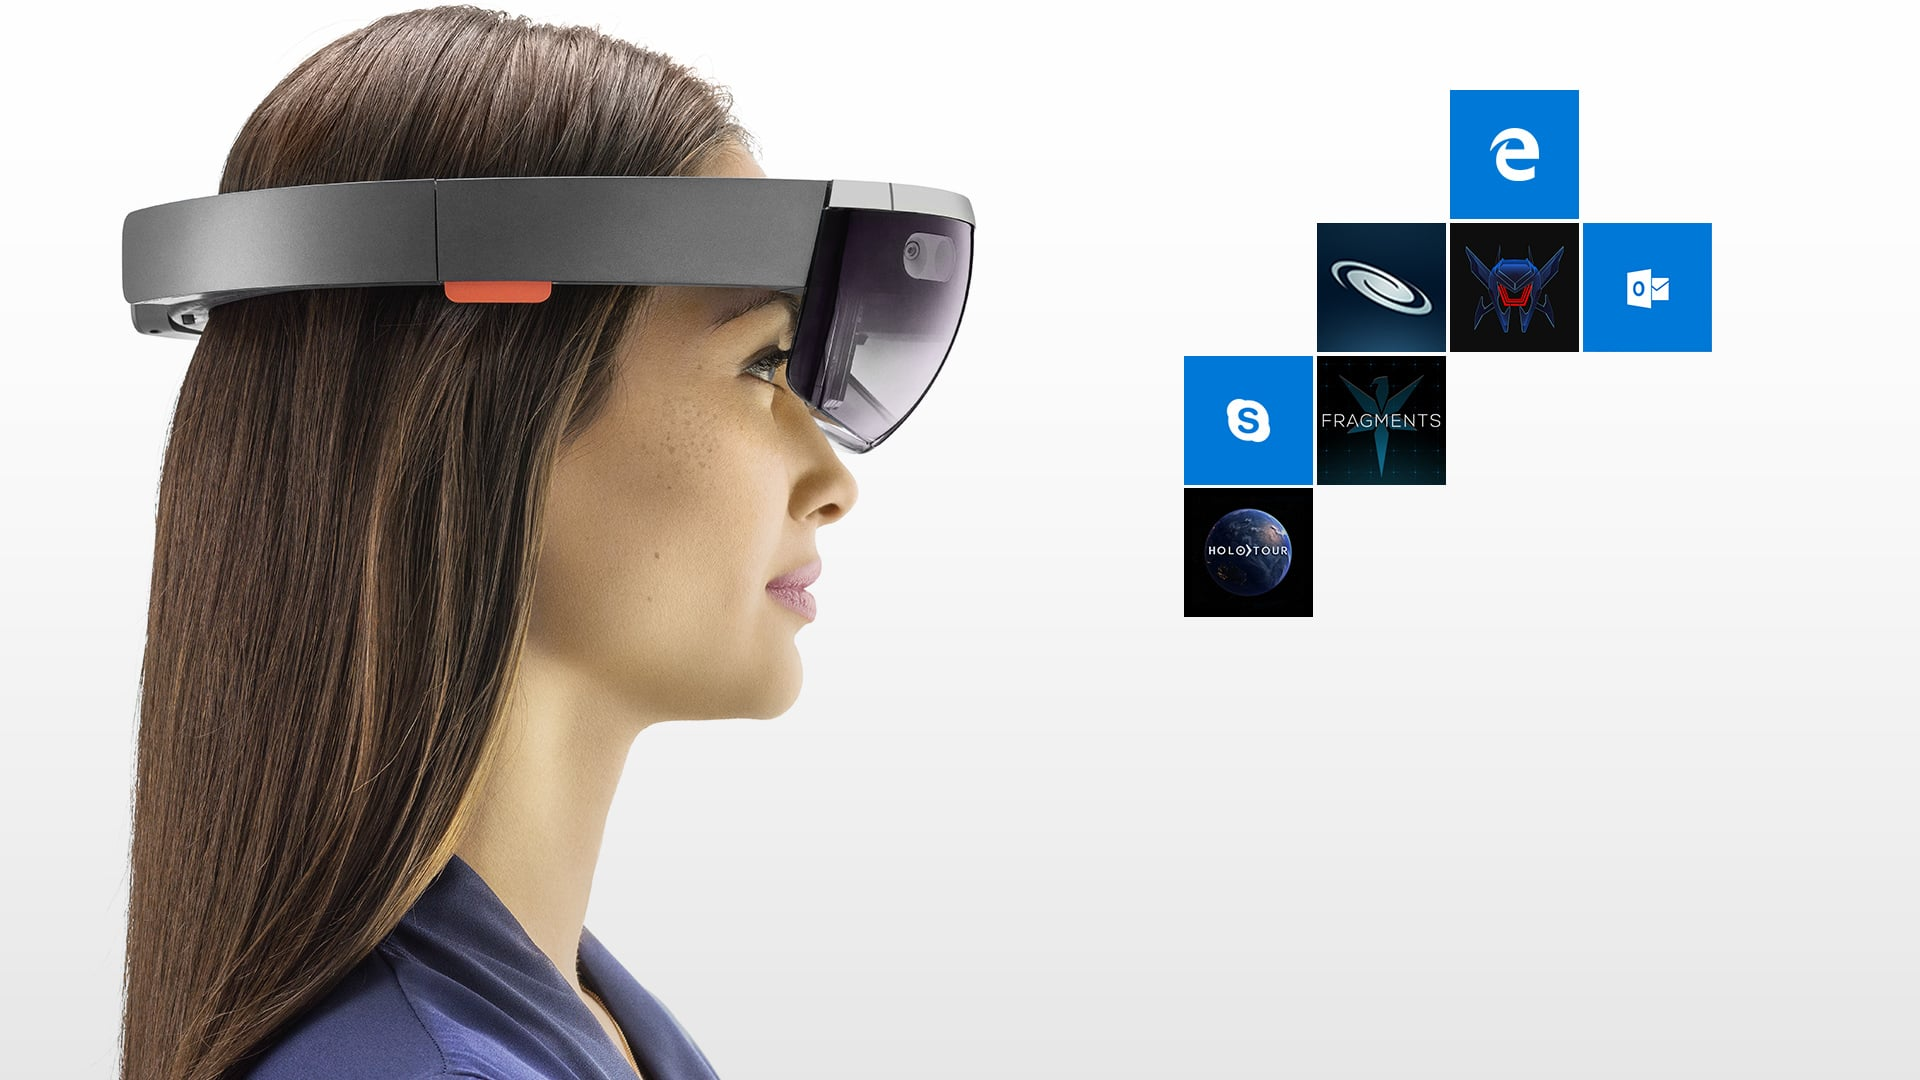 HoloLens: Feedback and guidelines